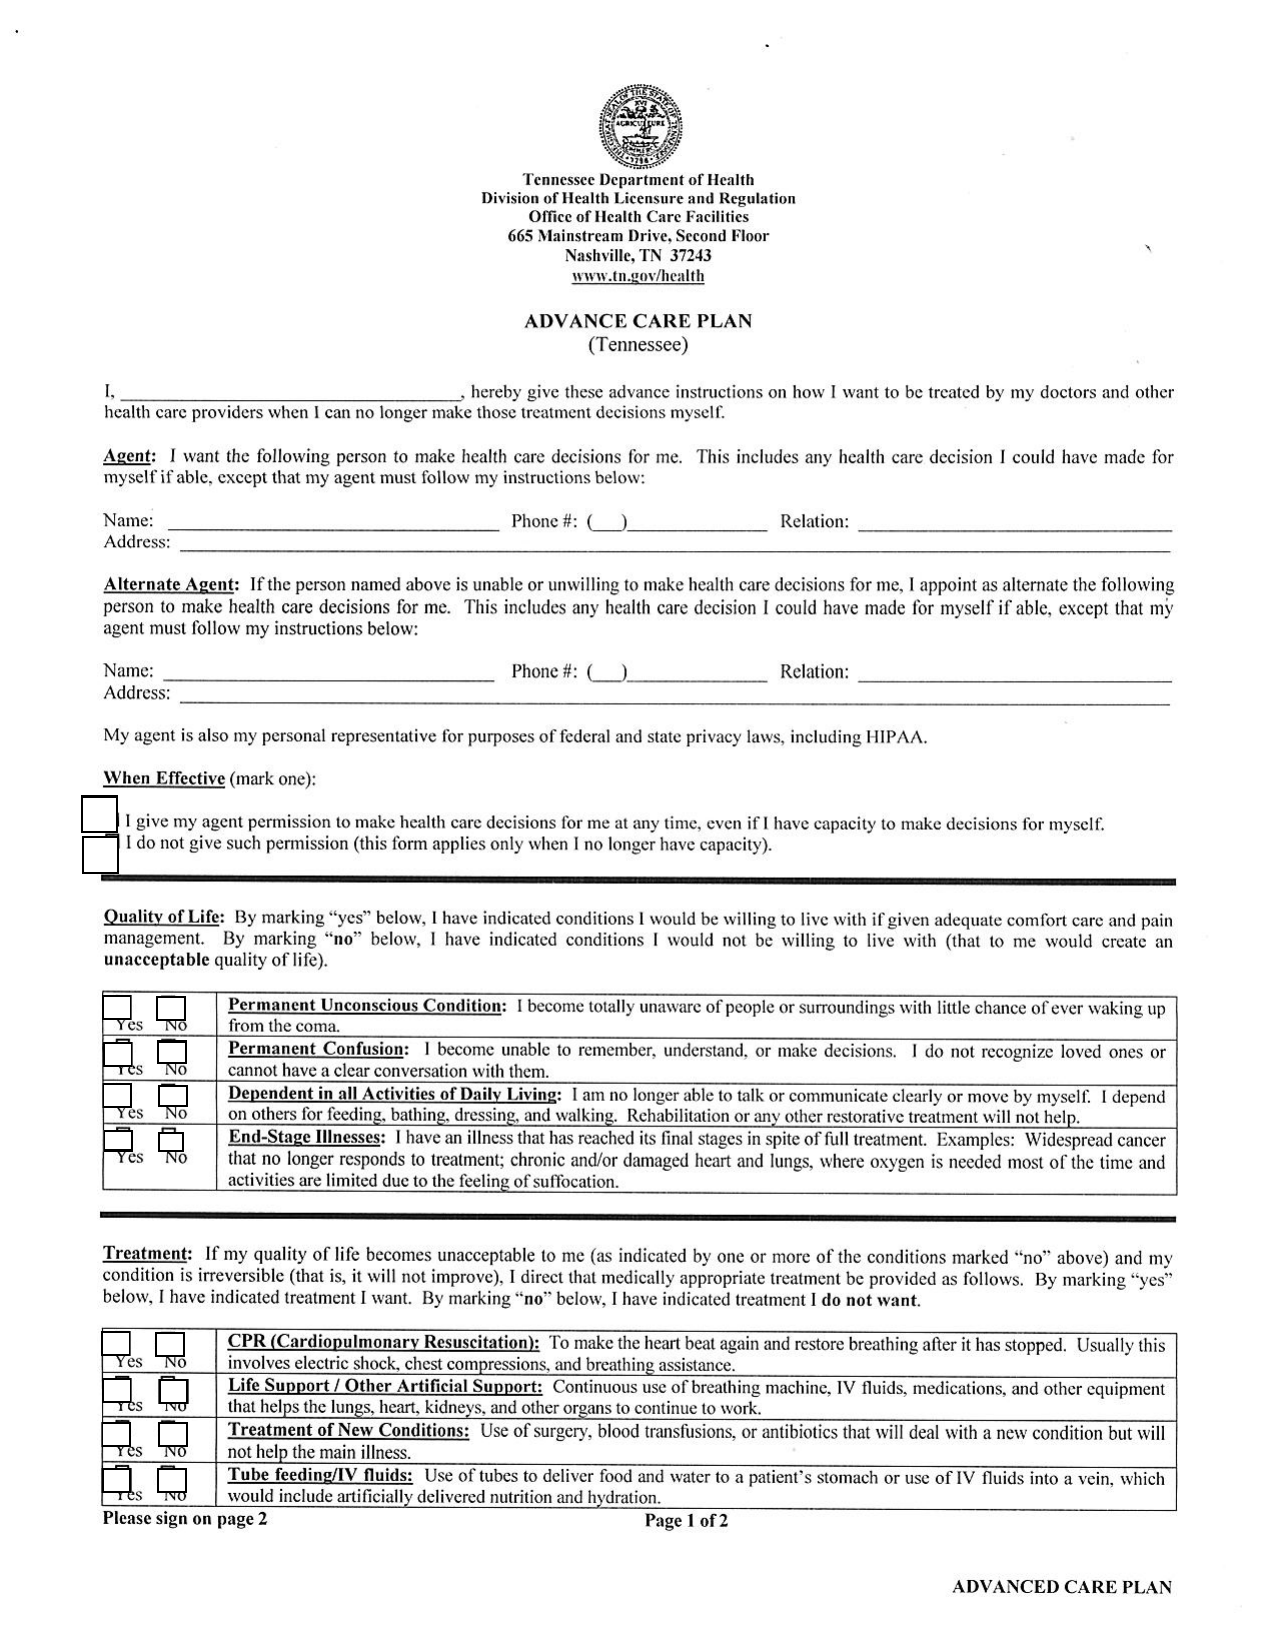 download tennessee living will form  u2013 advance directive